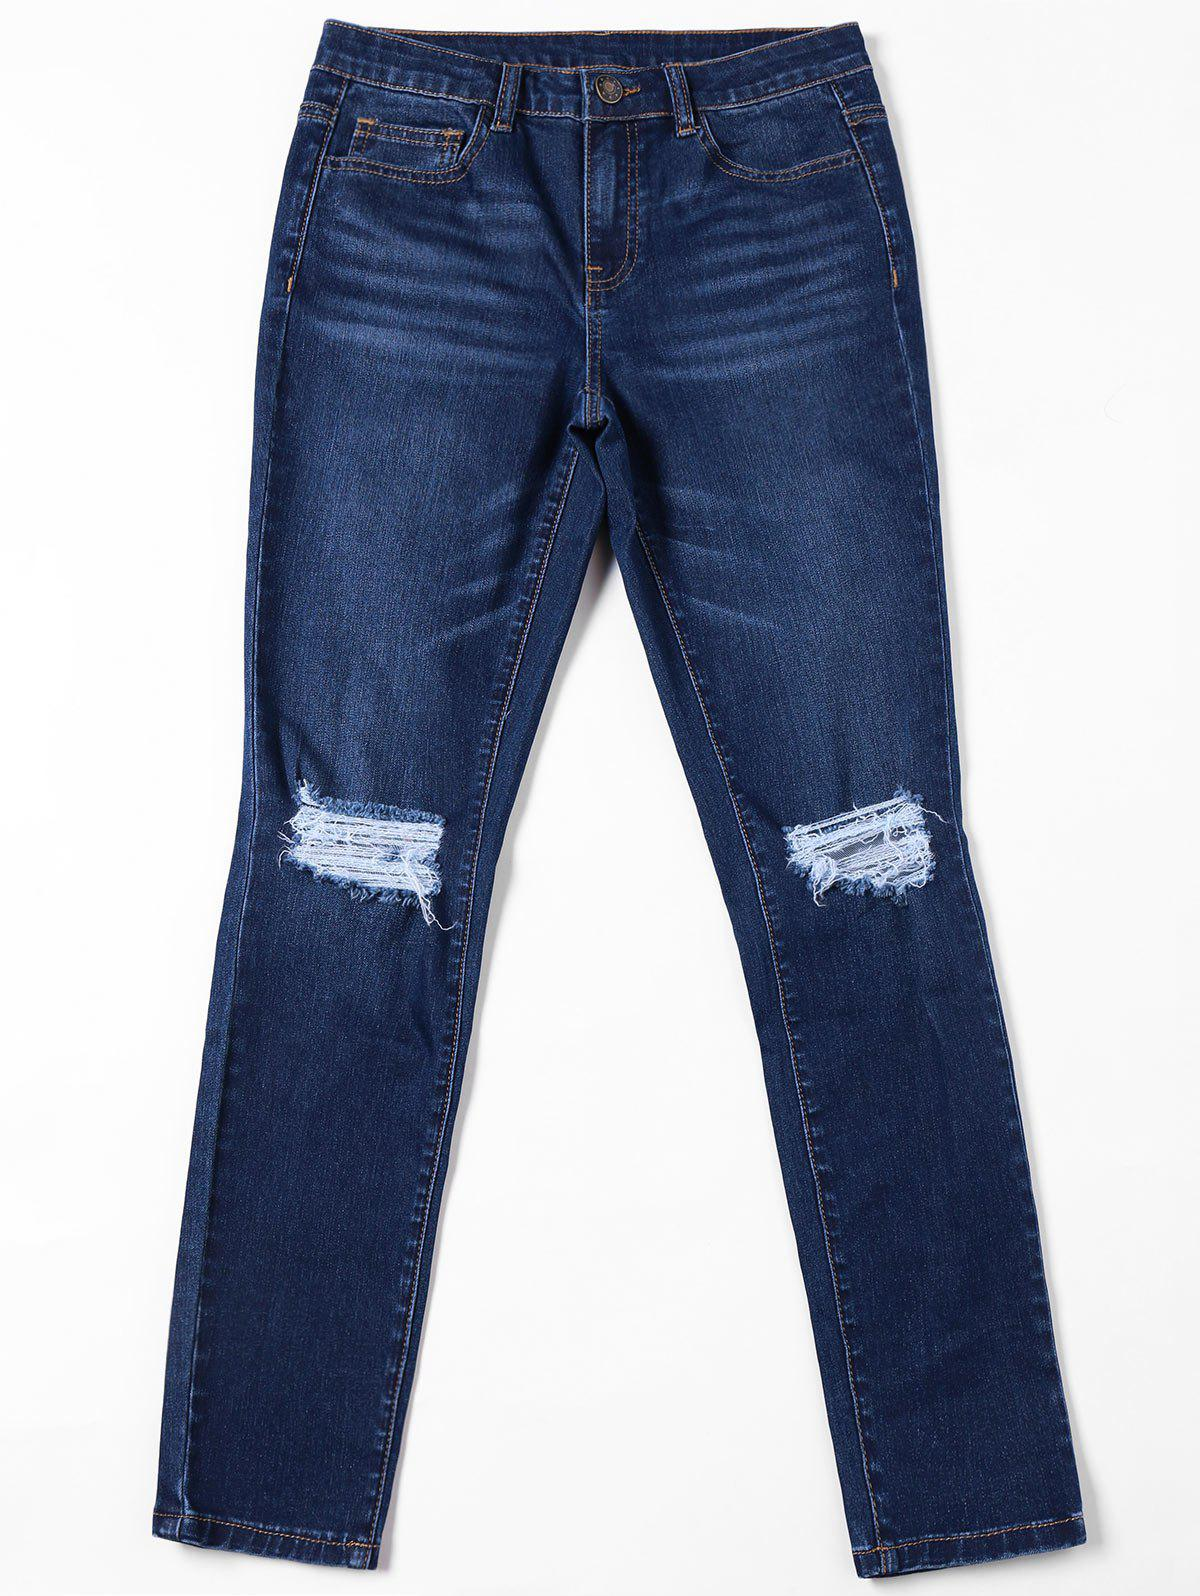 Cat's Whisker Ripped Jeans with Pockets - DENIM BLUE L